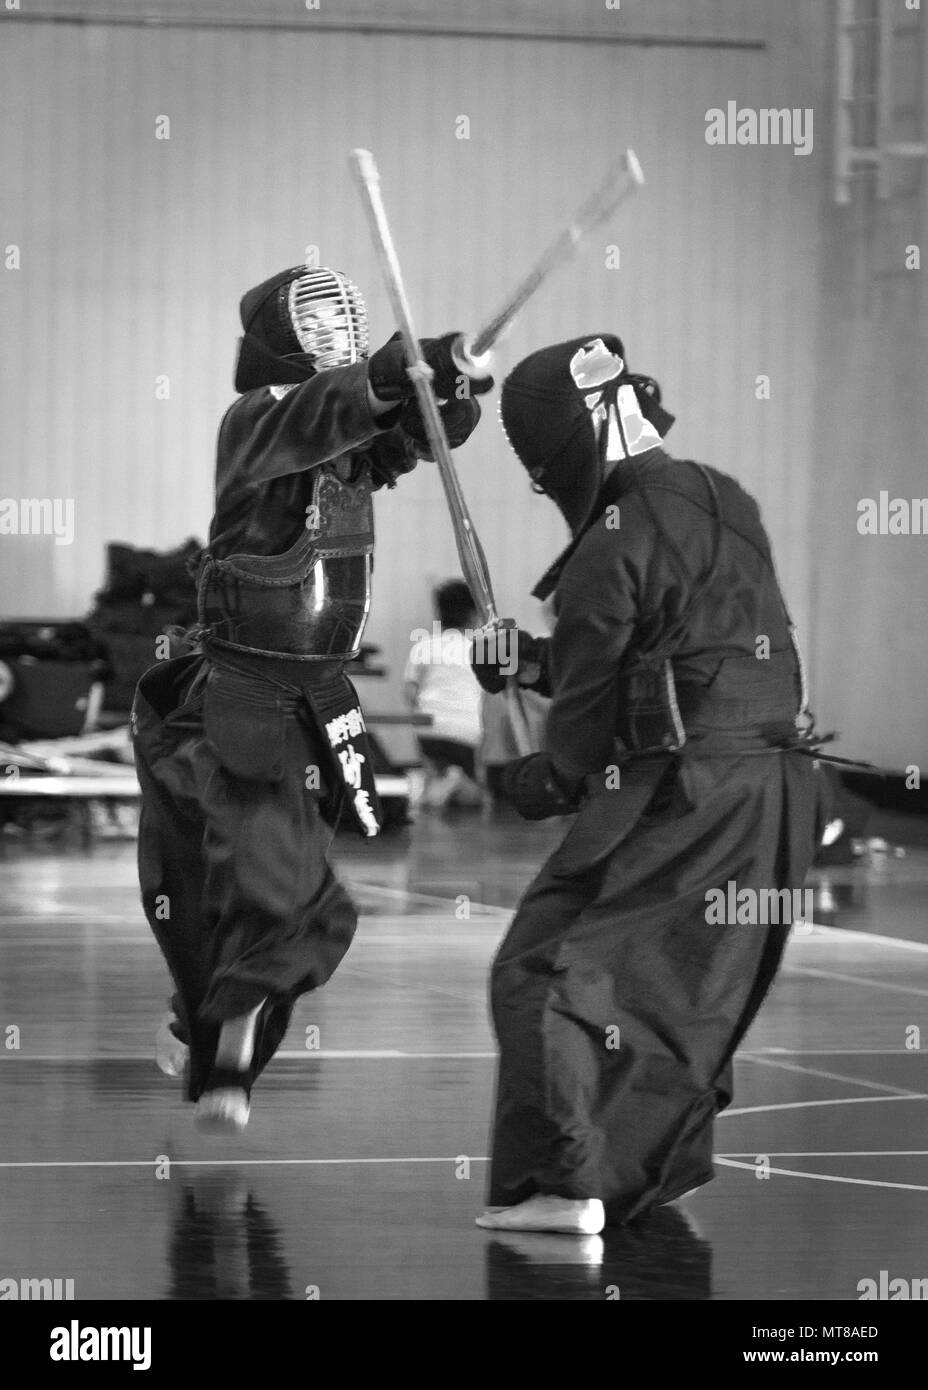 A kendo practitioner strikes his opponent's head during the Kendo Club Joint Summer Camp at Yokota Air Base, Japan, July 29, 2017. Yokota Kendo Club has practiced every Saturday for about 25 years. Kazuto Miura, headmaster of Keitenkan Dojo in Akishima city, founded Yokota Kendo Club and started to teach kendo on base. Yokota Kendo Club and Keitenkan Dojo hold summer camps together annually; this is the sixth time the summer camp has been held on base. (U.S. Air Force photo by Machiko Arita) - Stock Image